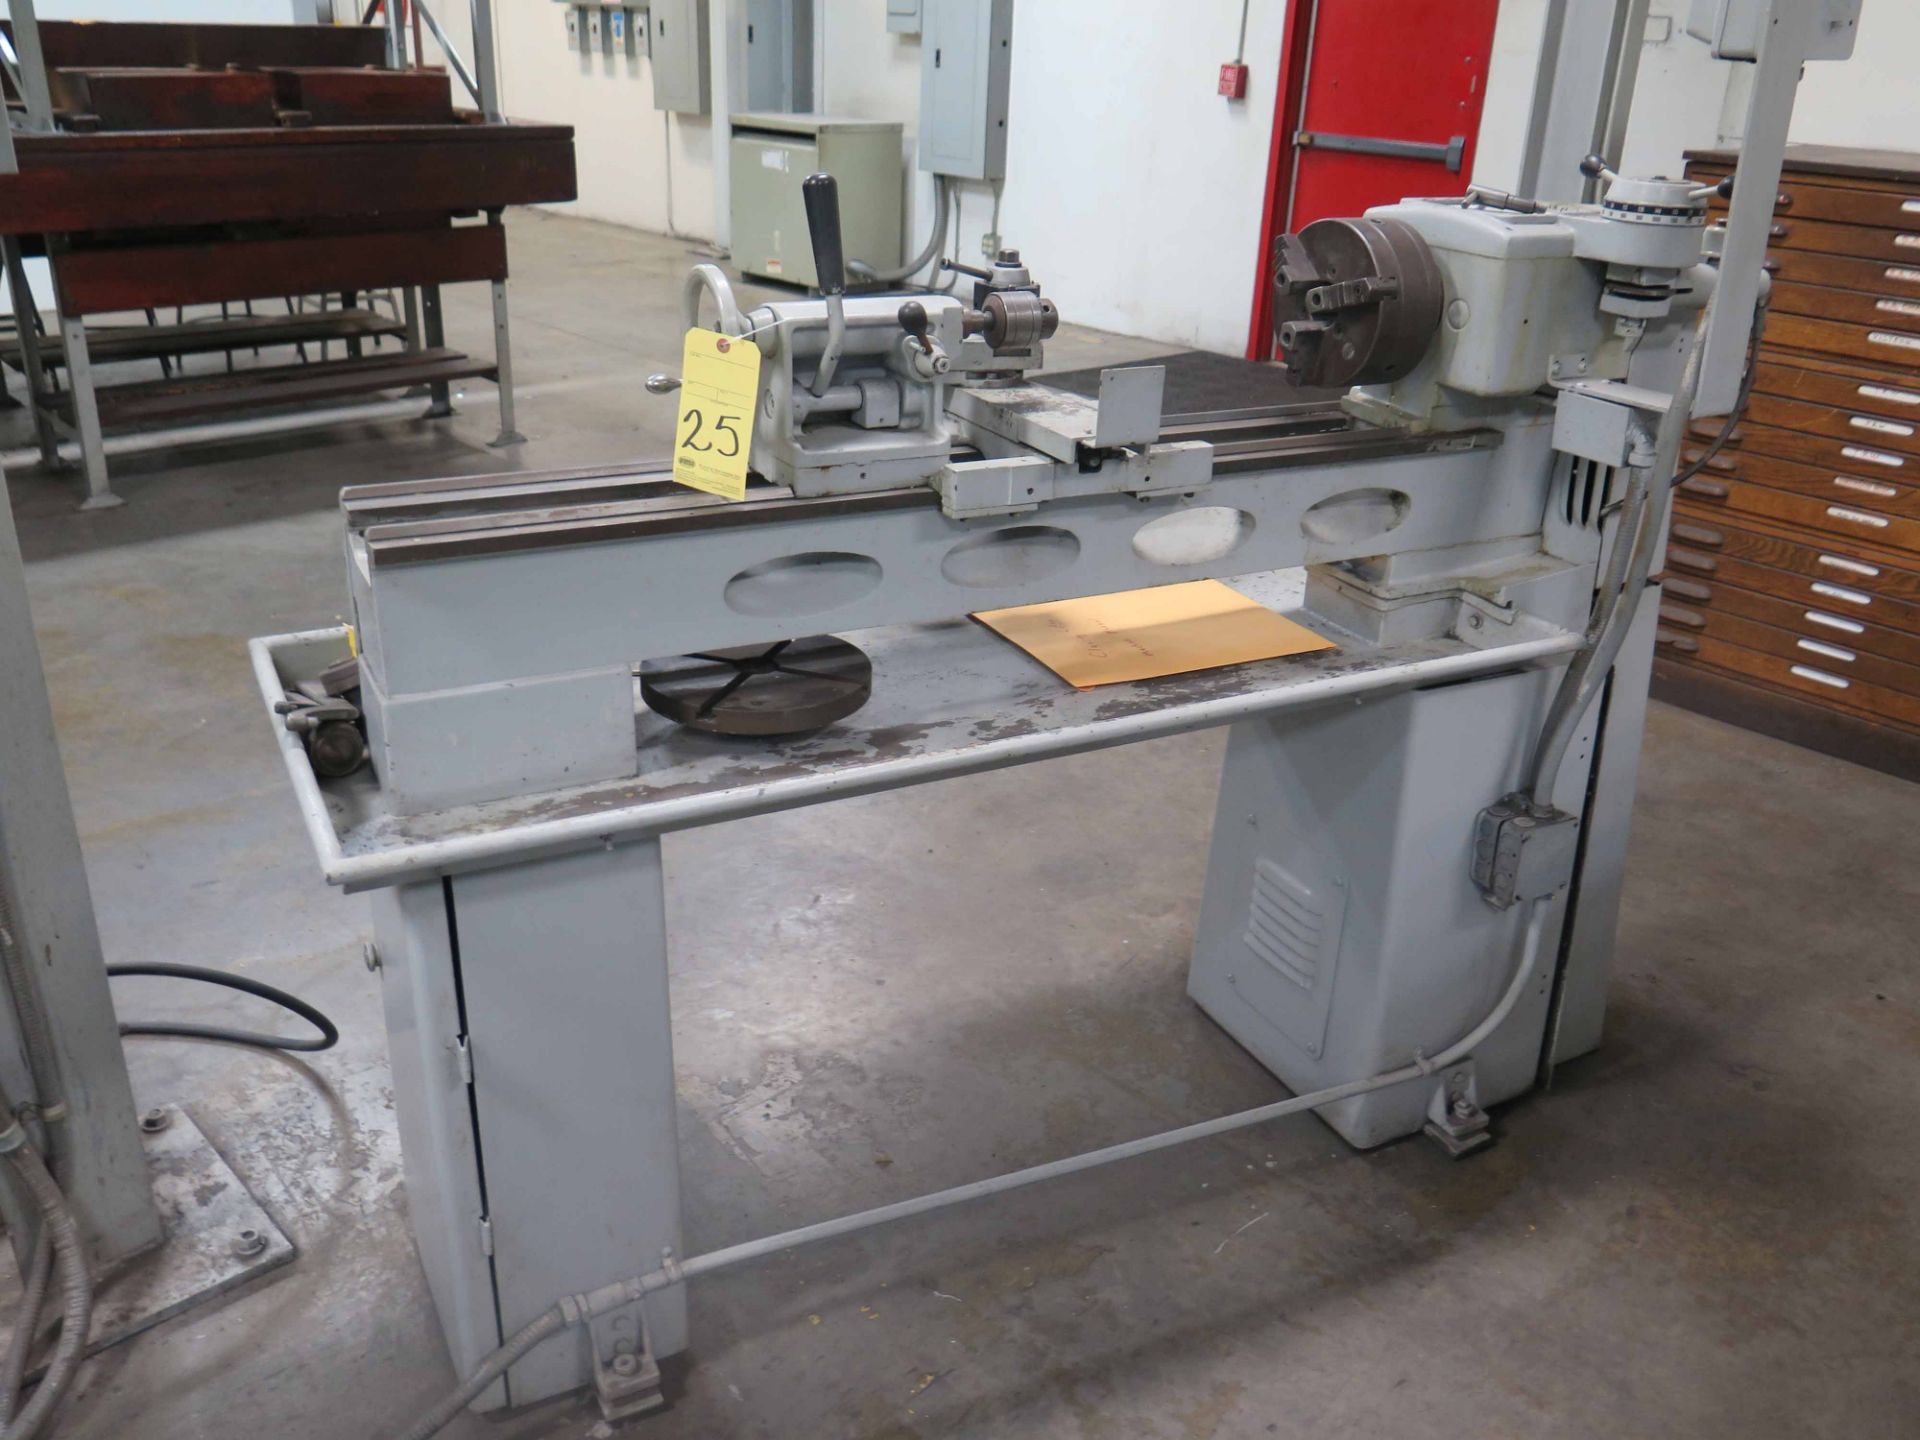 """Lot 25 - TOOLROOM LATHE, CLAUSING MDL. 5914, 12"""" swing, 40"""" dist. btwn. centers, 7-3/4"""" 3-jaw chuck,"""